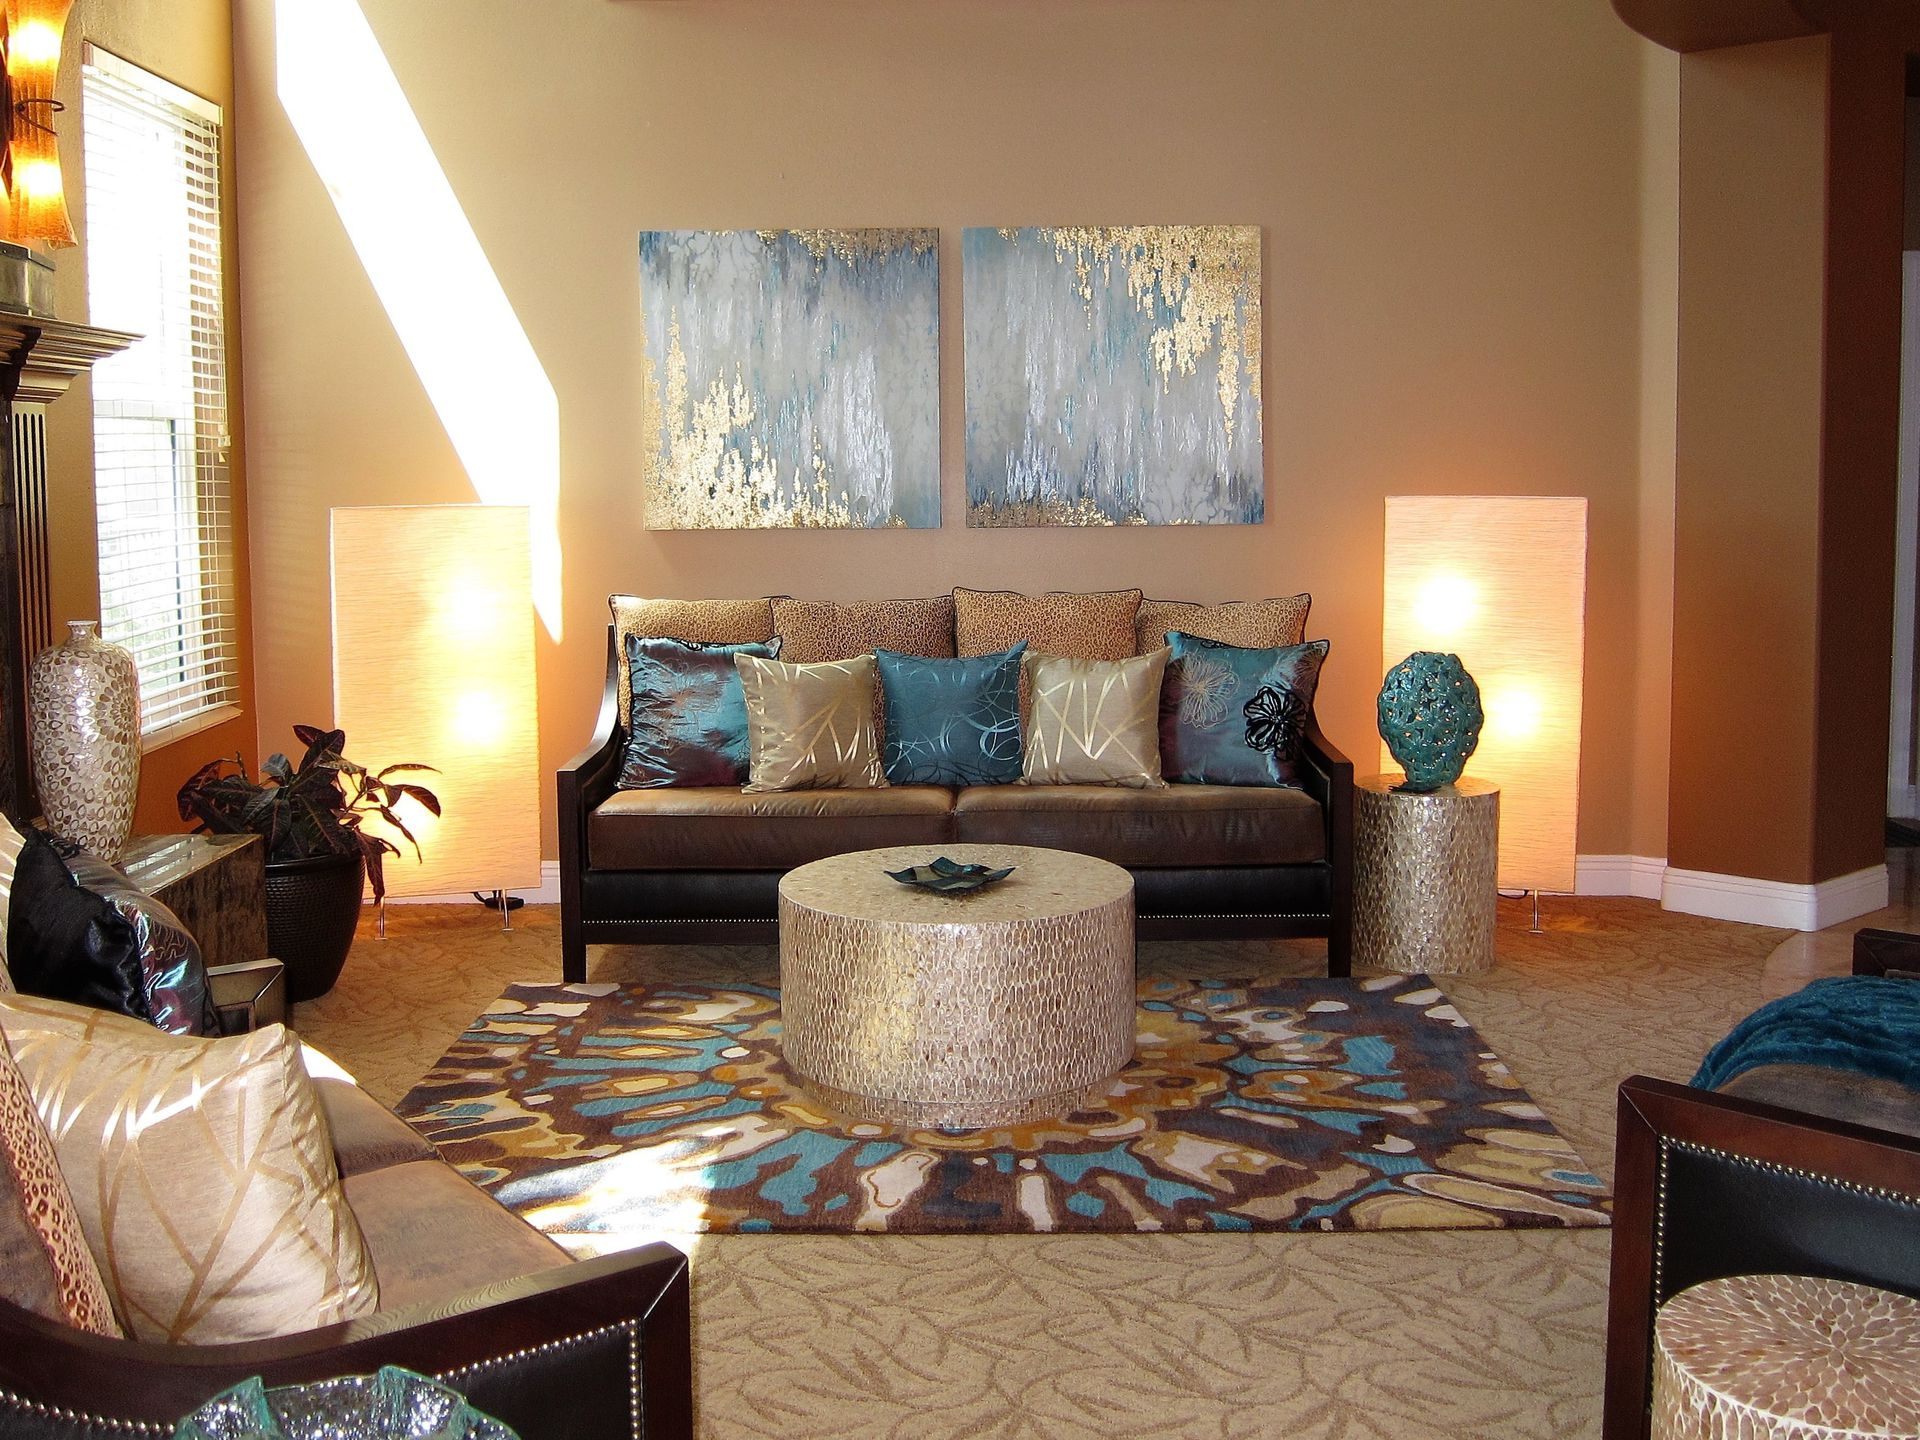 Vibrant Formal Living Room With Attention To Detail.